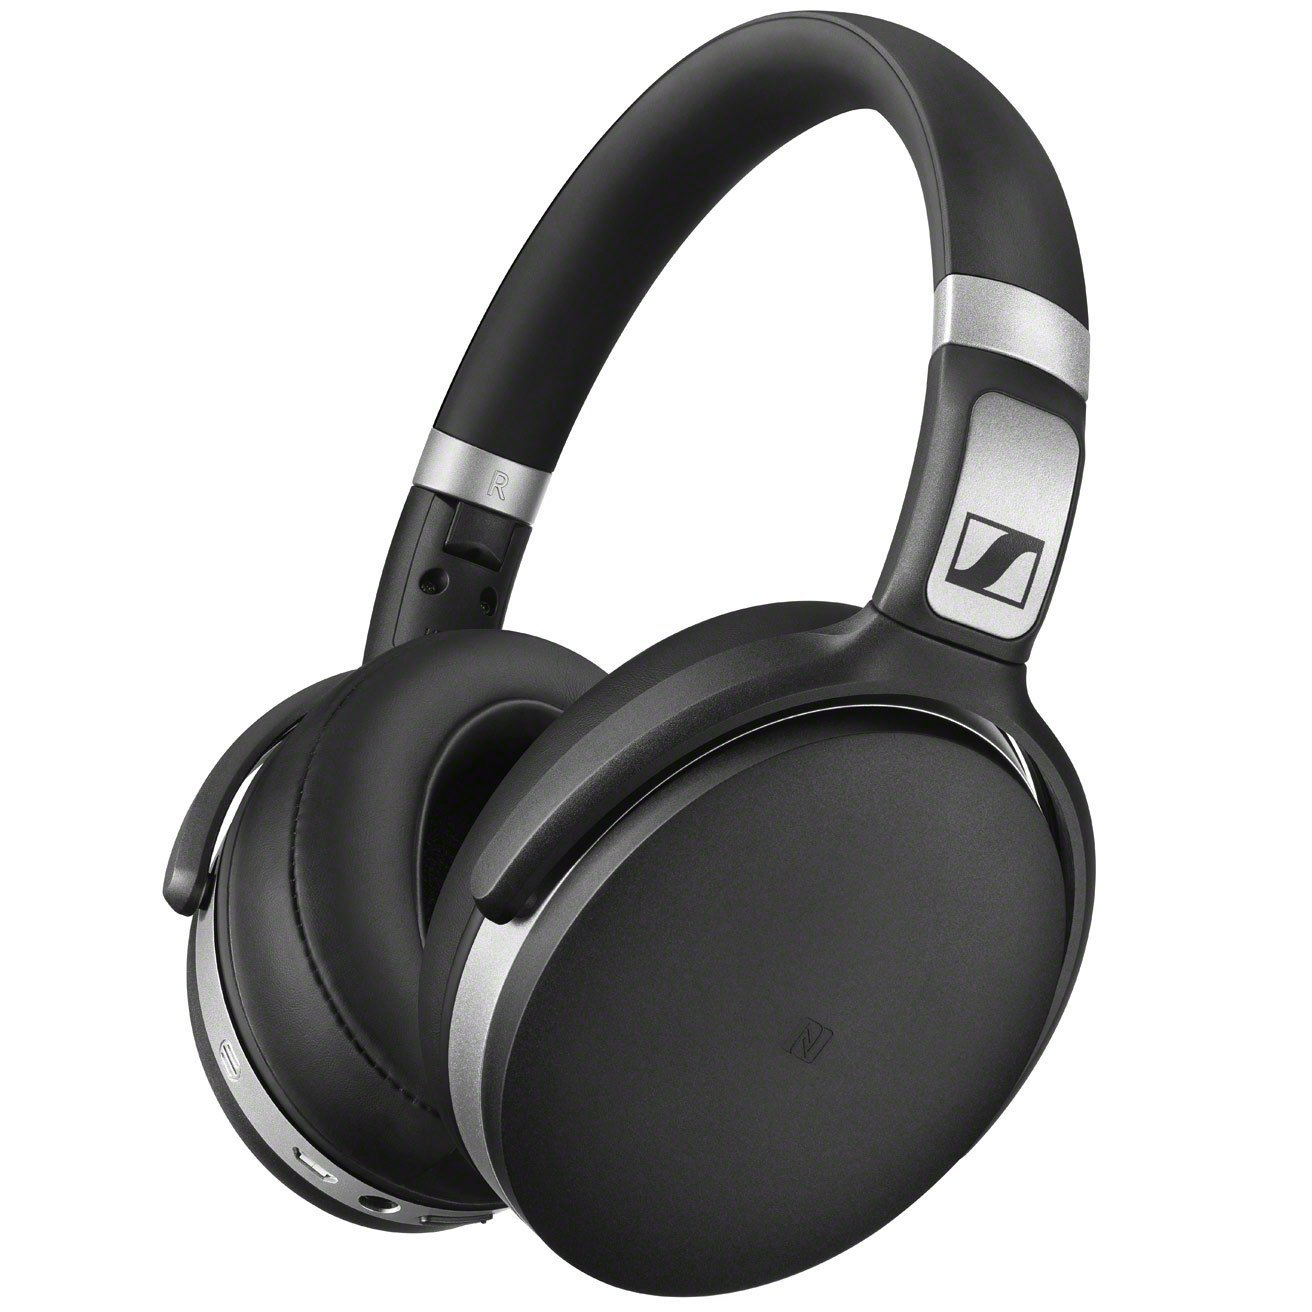 Wireless Around Ear Headphones with Bluetooth, APT-X and ANC